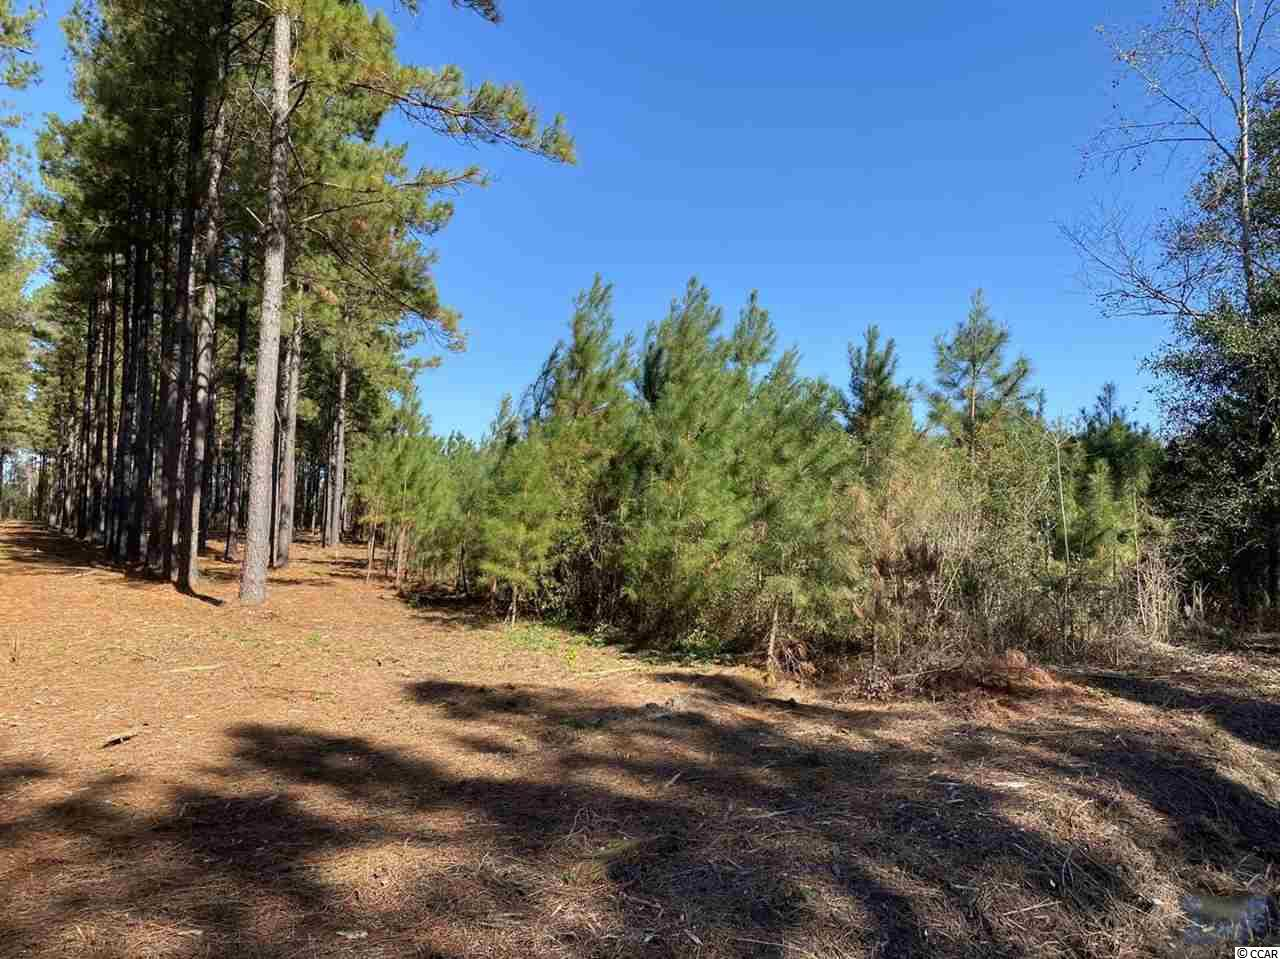 Beautiful 13.85 acre tract mostly covered with small pines- Endless possiblities- Public water available- Public sewer with 4700 feet- located close proximity to Hwy 22 and access to north end of Myrtle Beach.